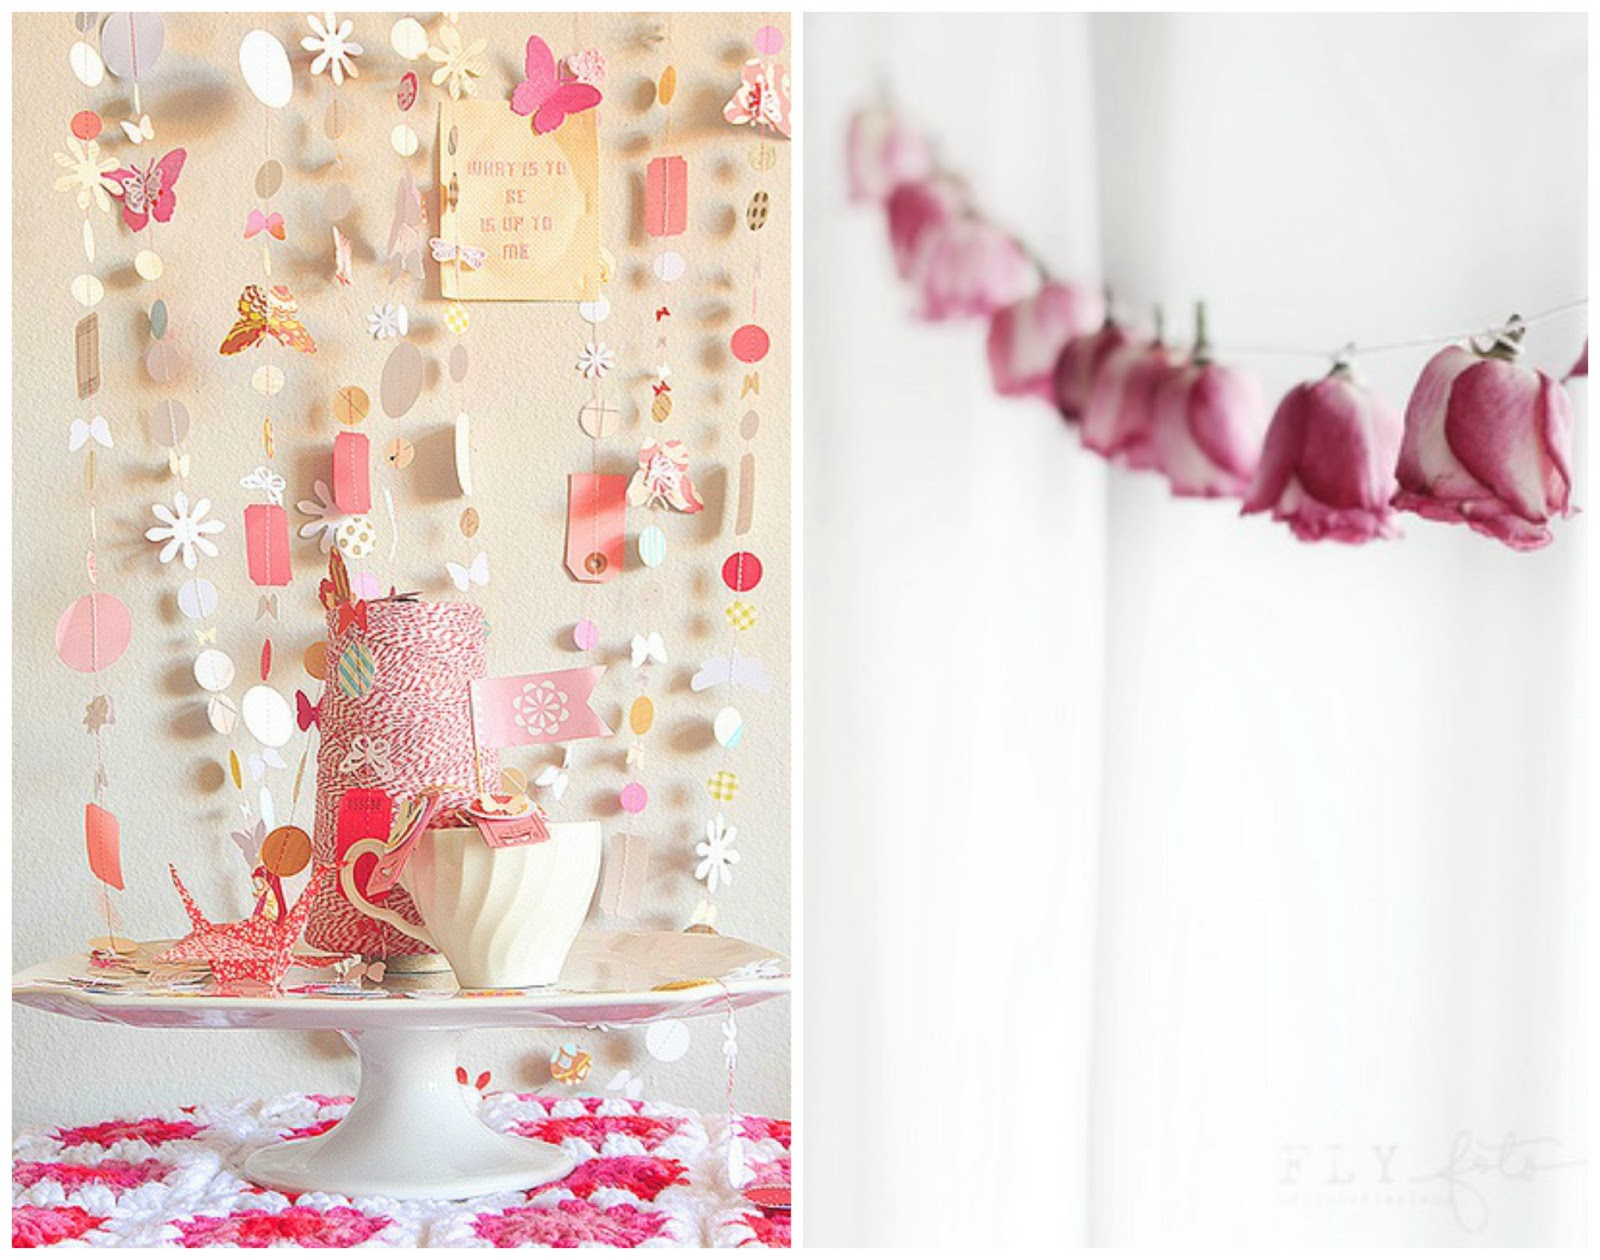 spring fling: spring garlands inspiration by momentstolivefor